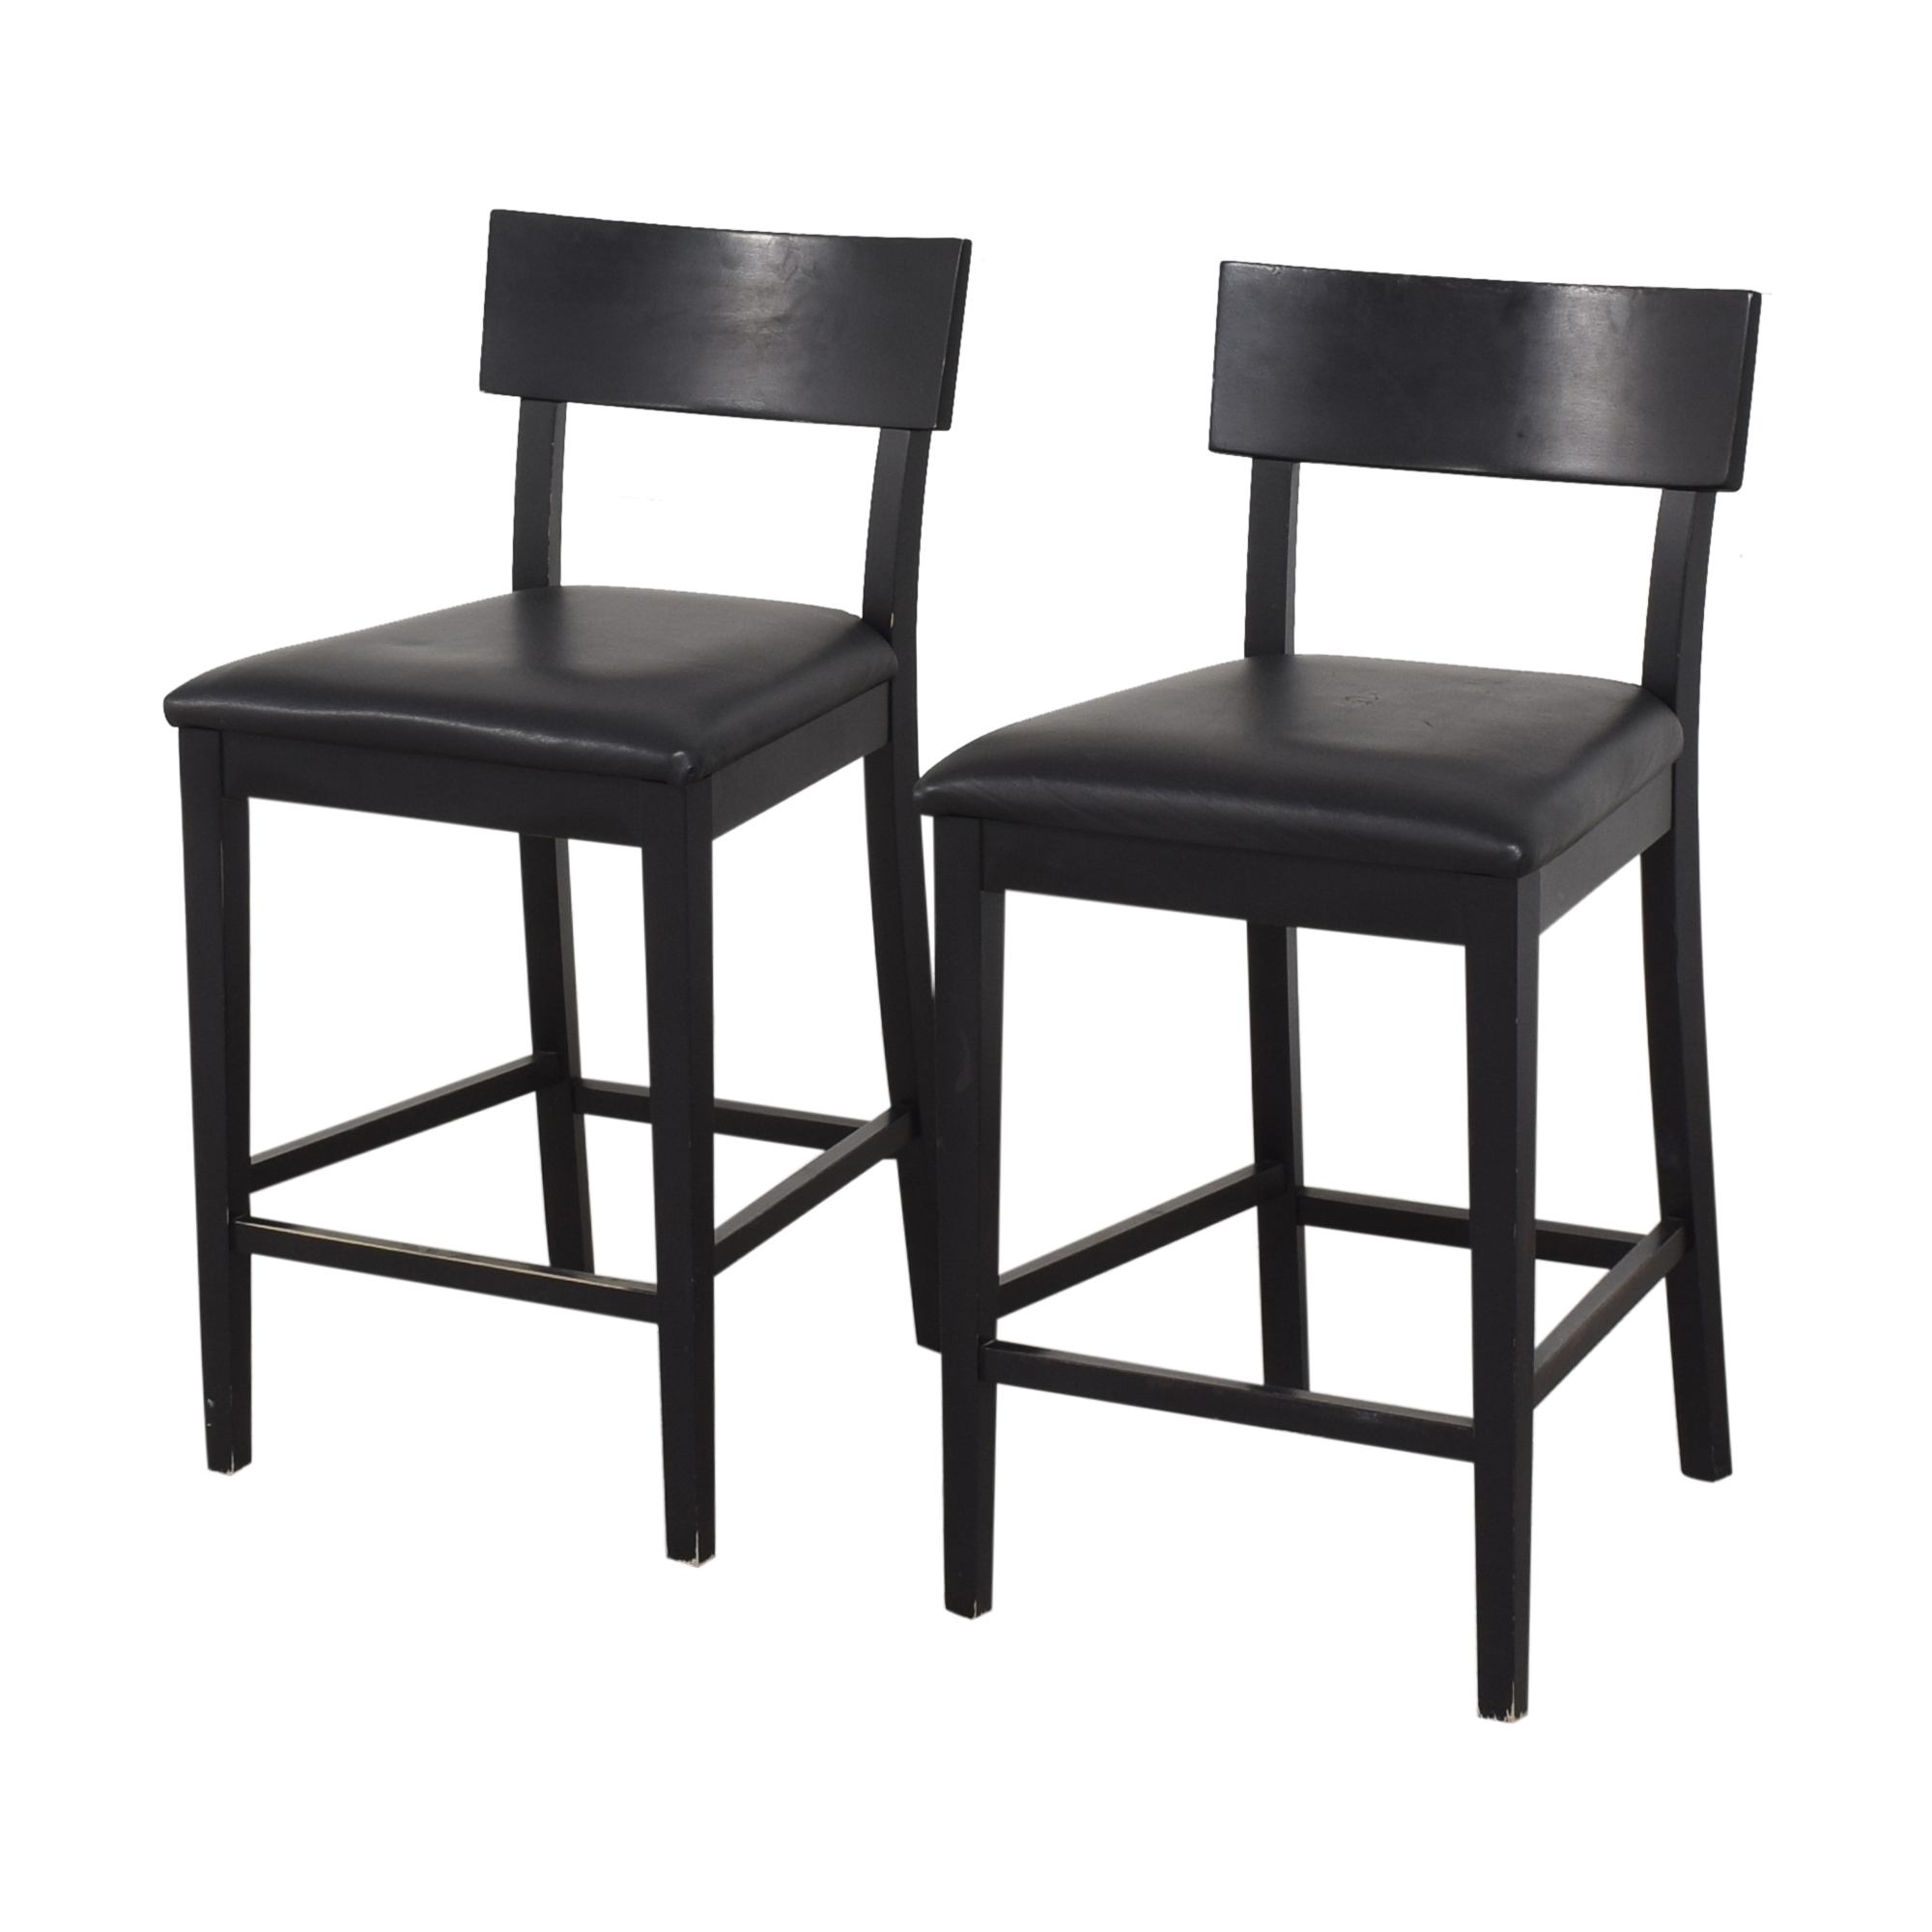 Room & Board Room & Board Doyle Counter Stools Chairs